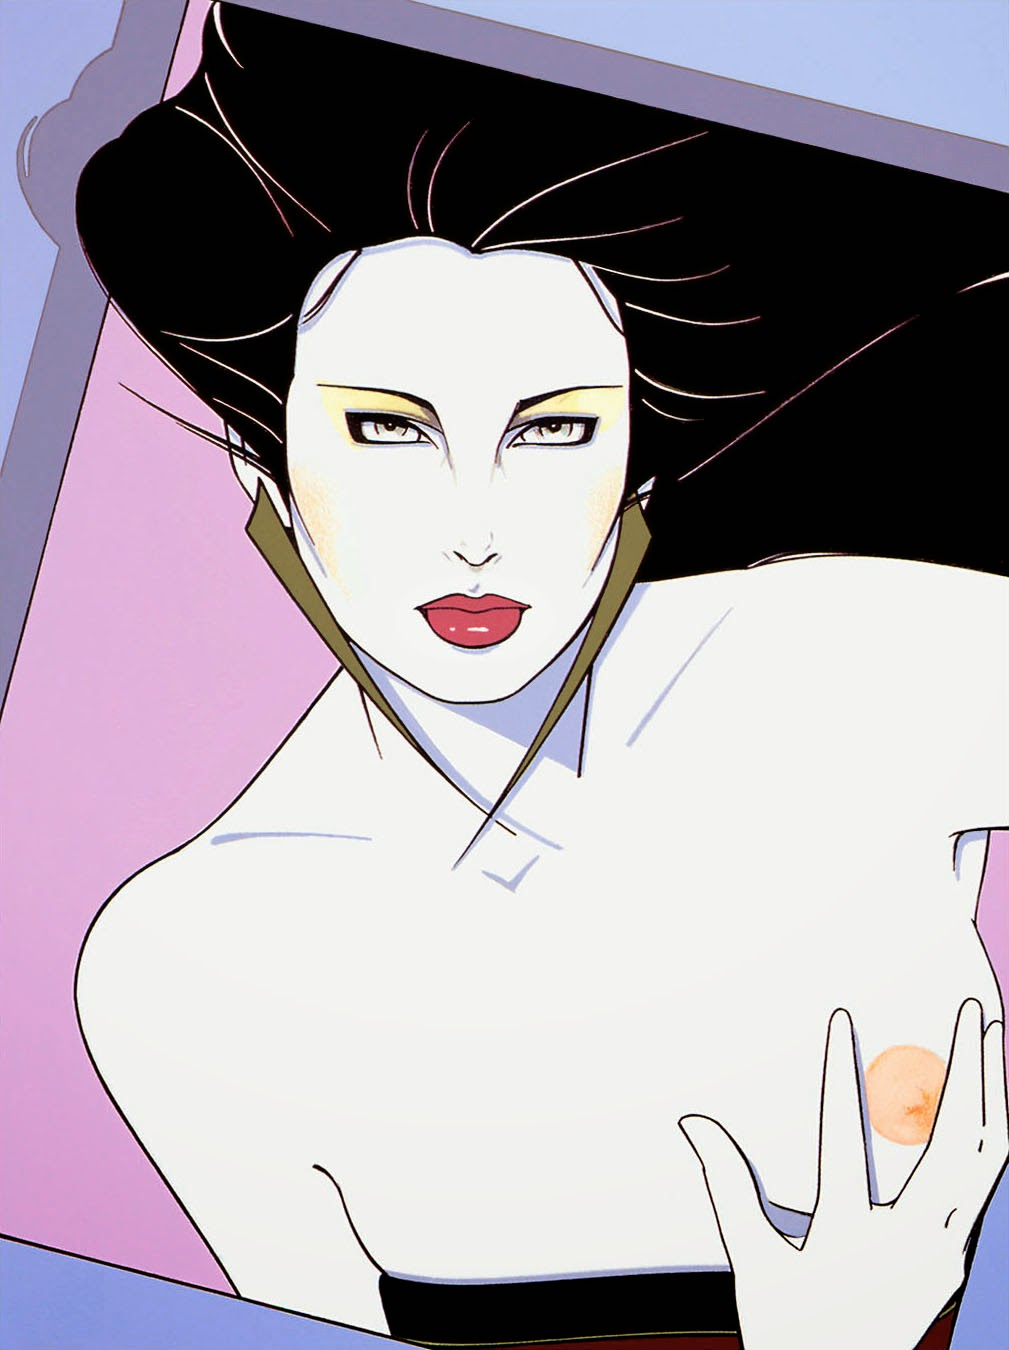 Fantasy Portrait Photography additionally House E 1027 By Eileen Gray Illustrated By Josephin Ritschel furthermore ThsKmR4y5AXFEkJM also Patrick Nagel further Psychedelic Background. on surreal art